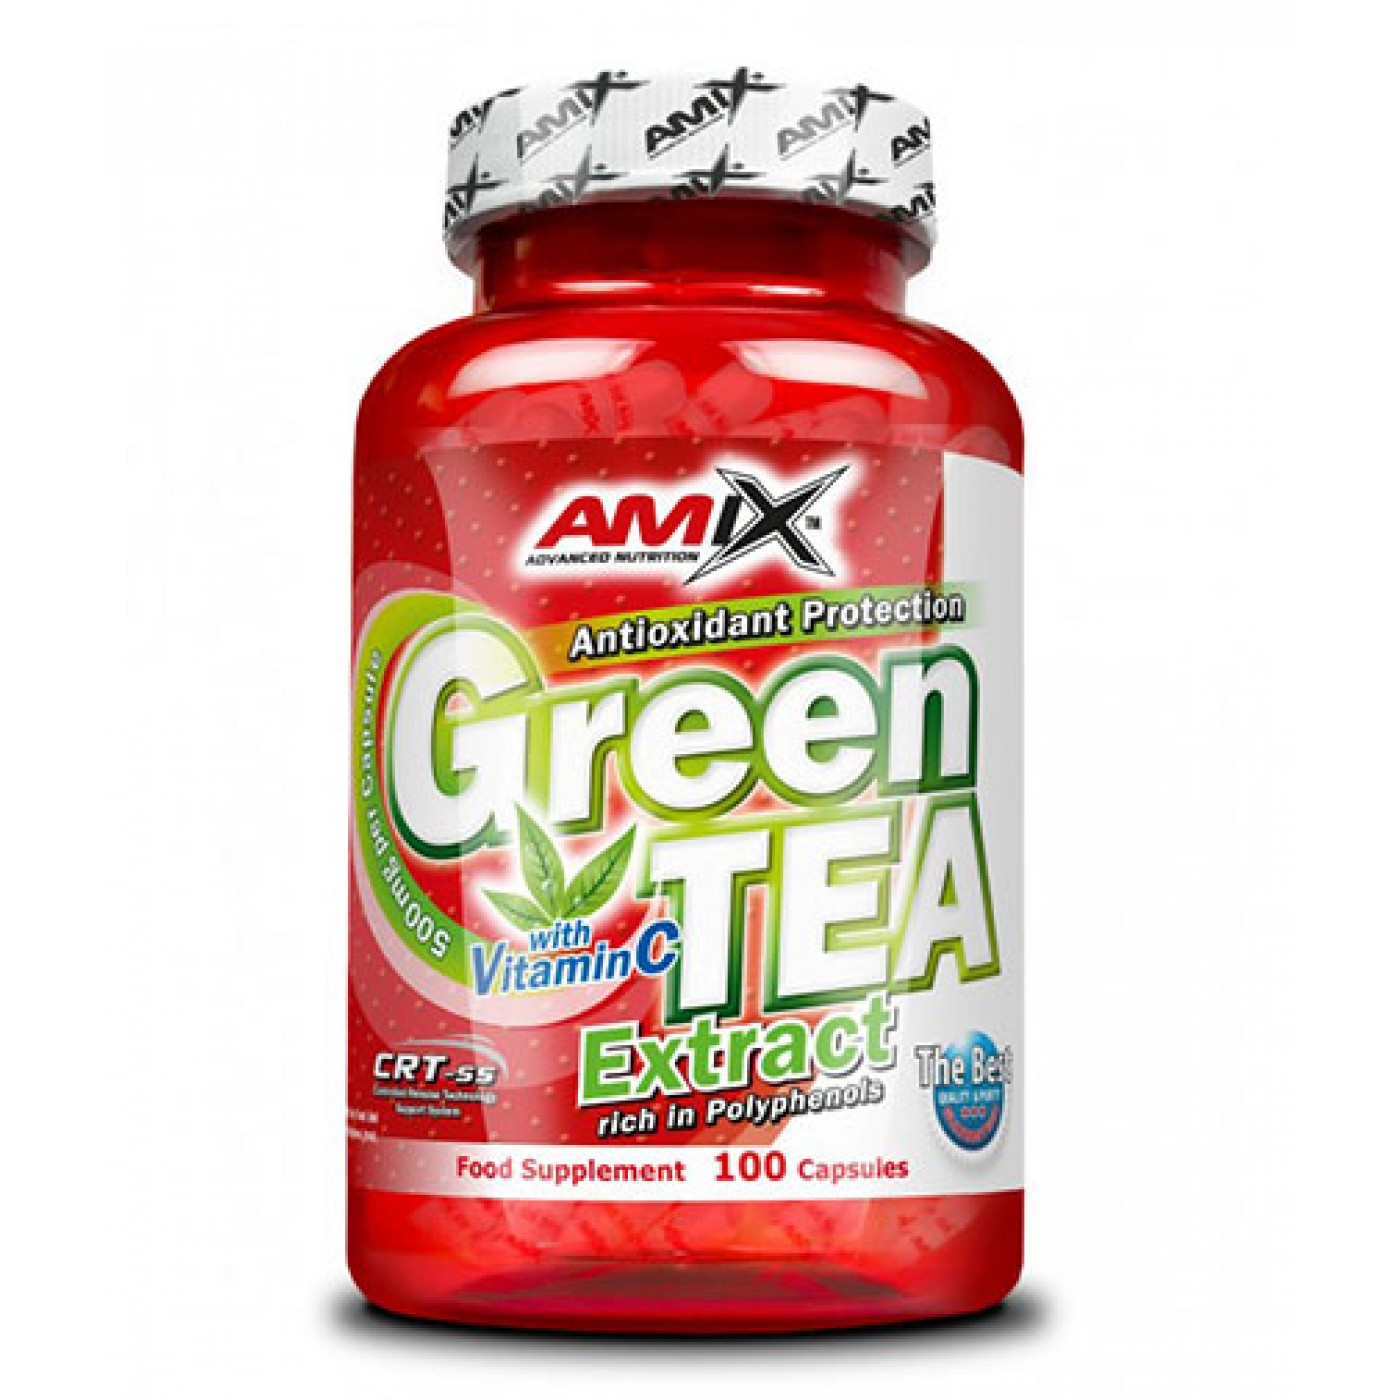 AMIX Green Tea Extract (with Vitamin C)